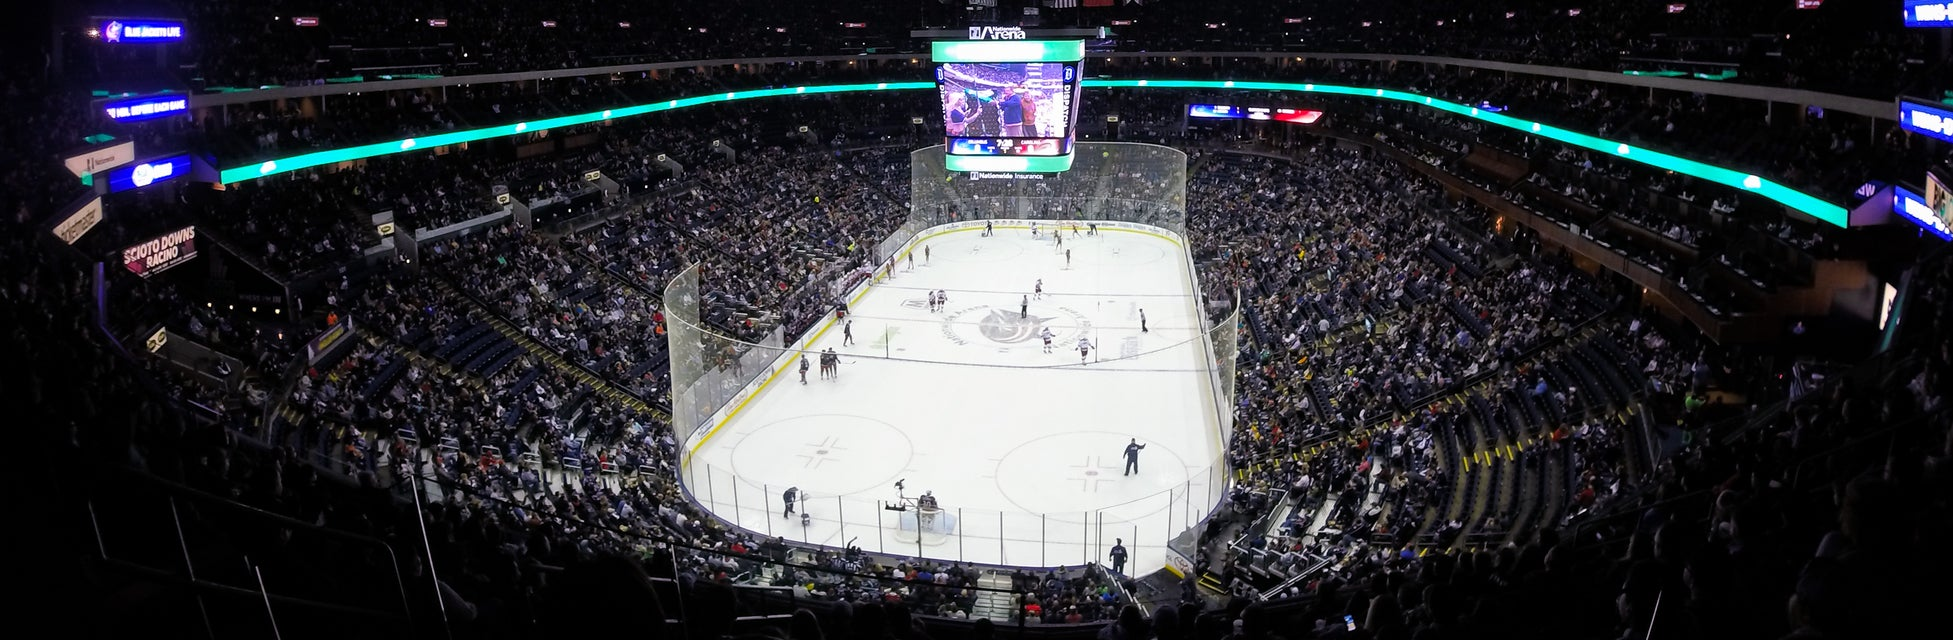 Seat view from Upper Bowl